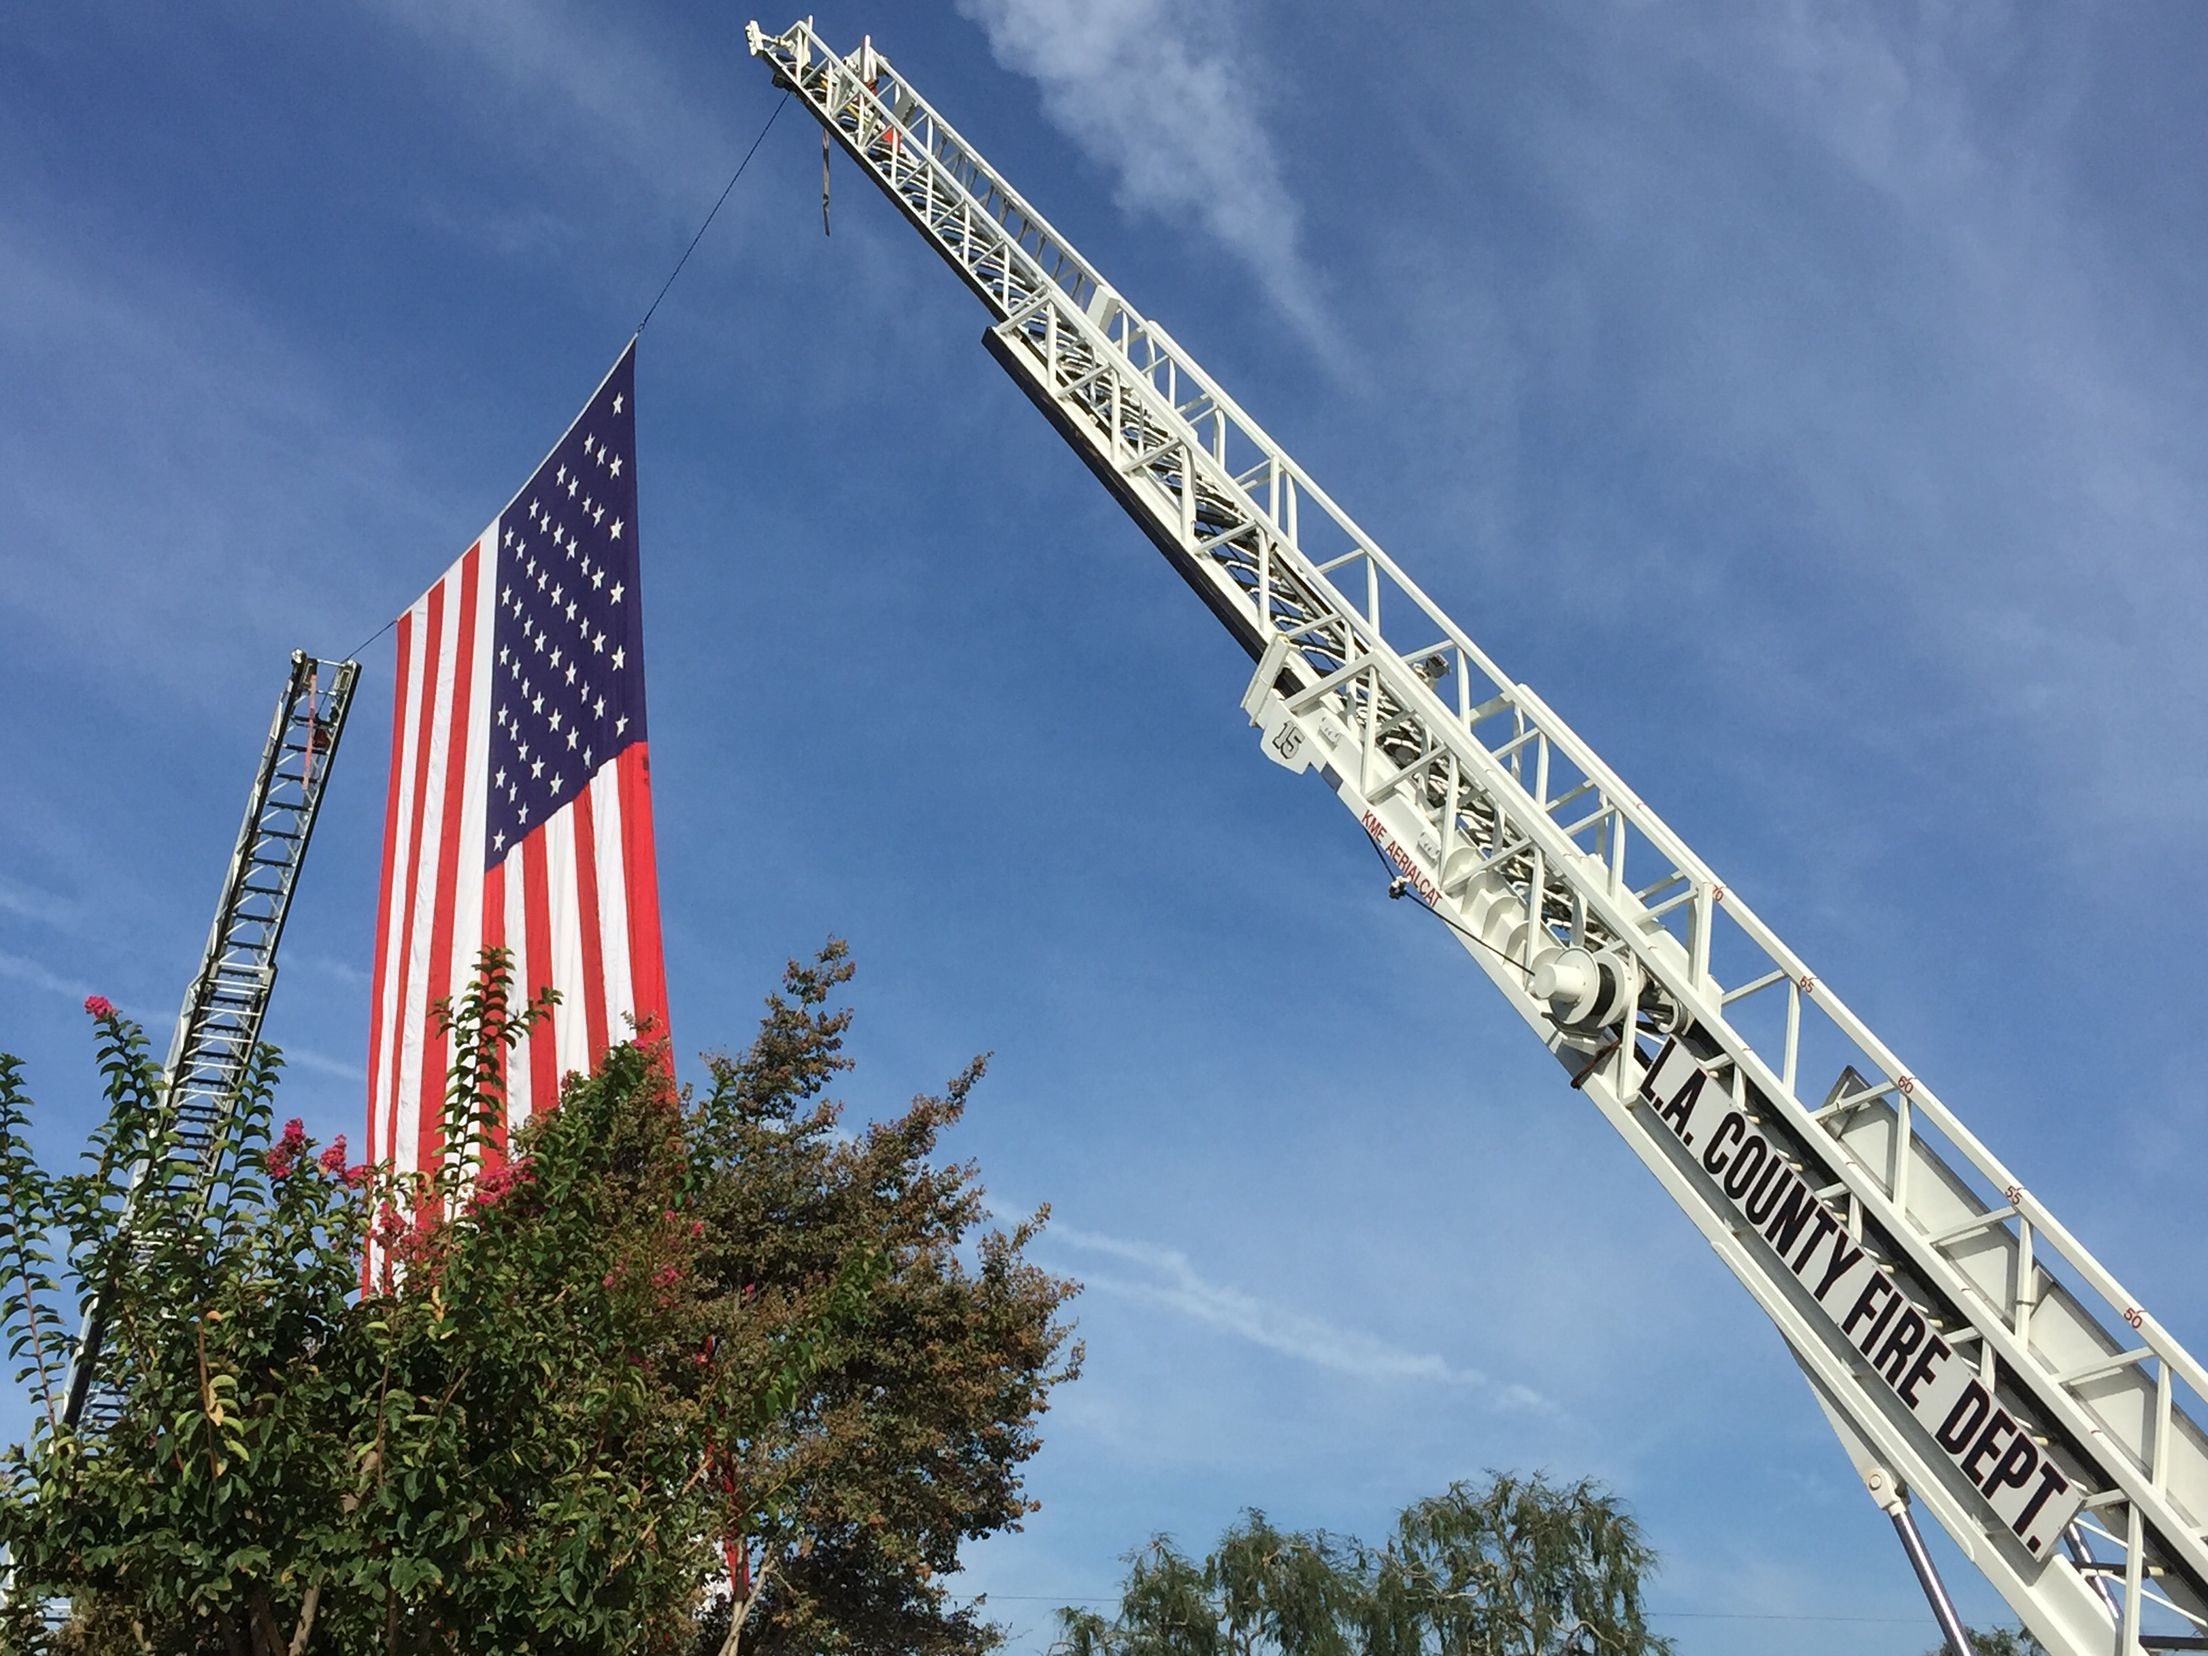 Lacofd Garrison Flag Displayed By Q20 And Q15 At Ffs Magallanes Funeral 9 28 15 Flag Display American Flag Golden Gate